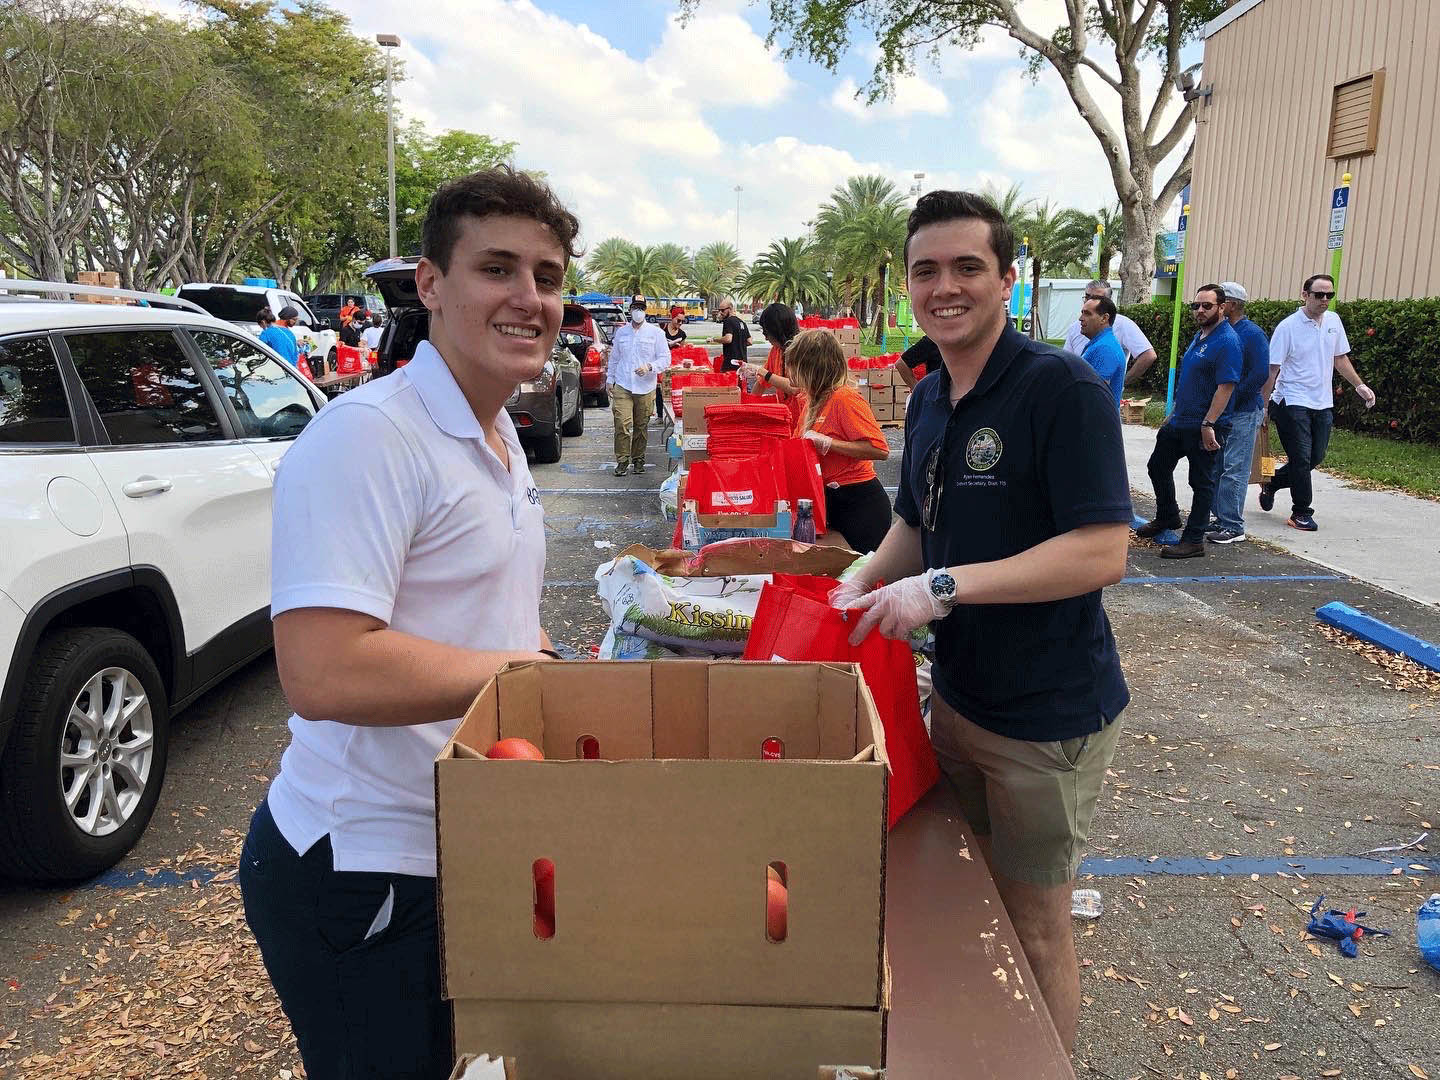 Miami Heat Forms Partnership To Help Feed South Floridians